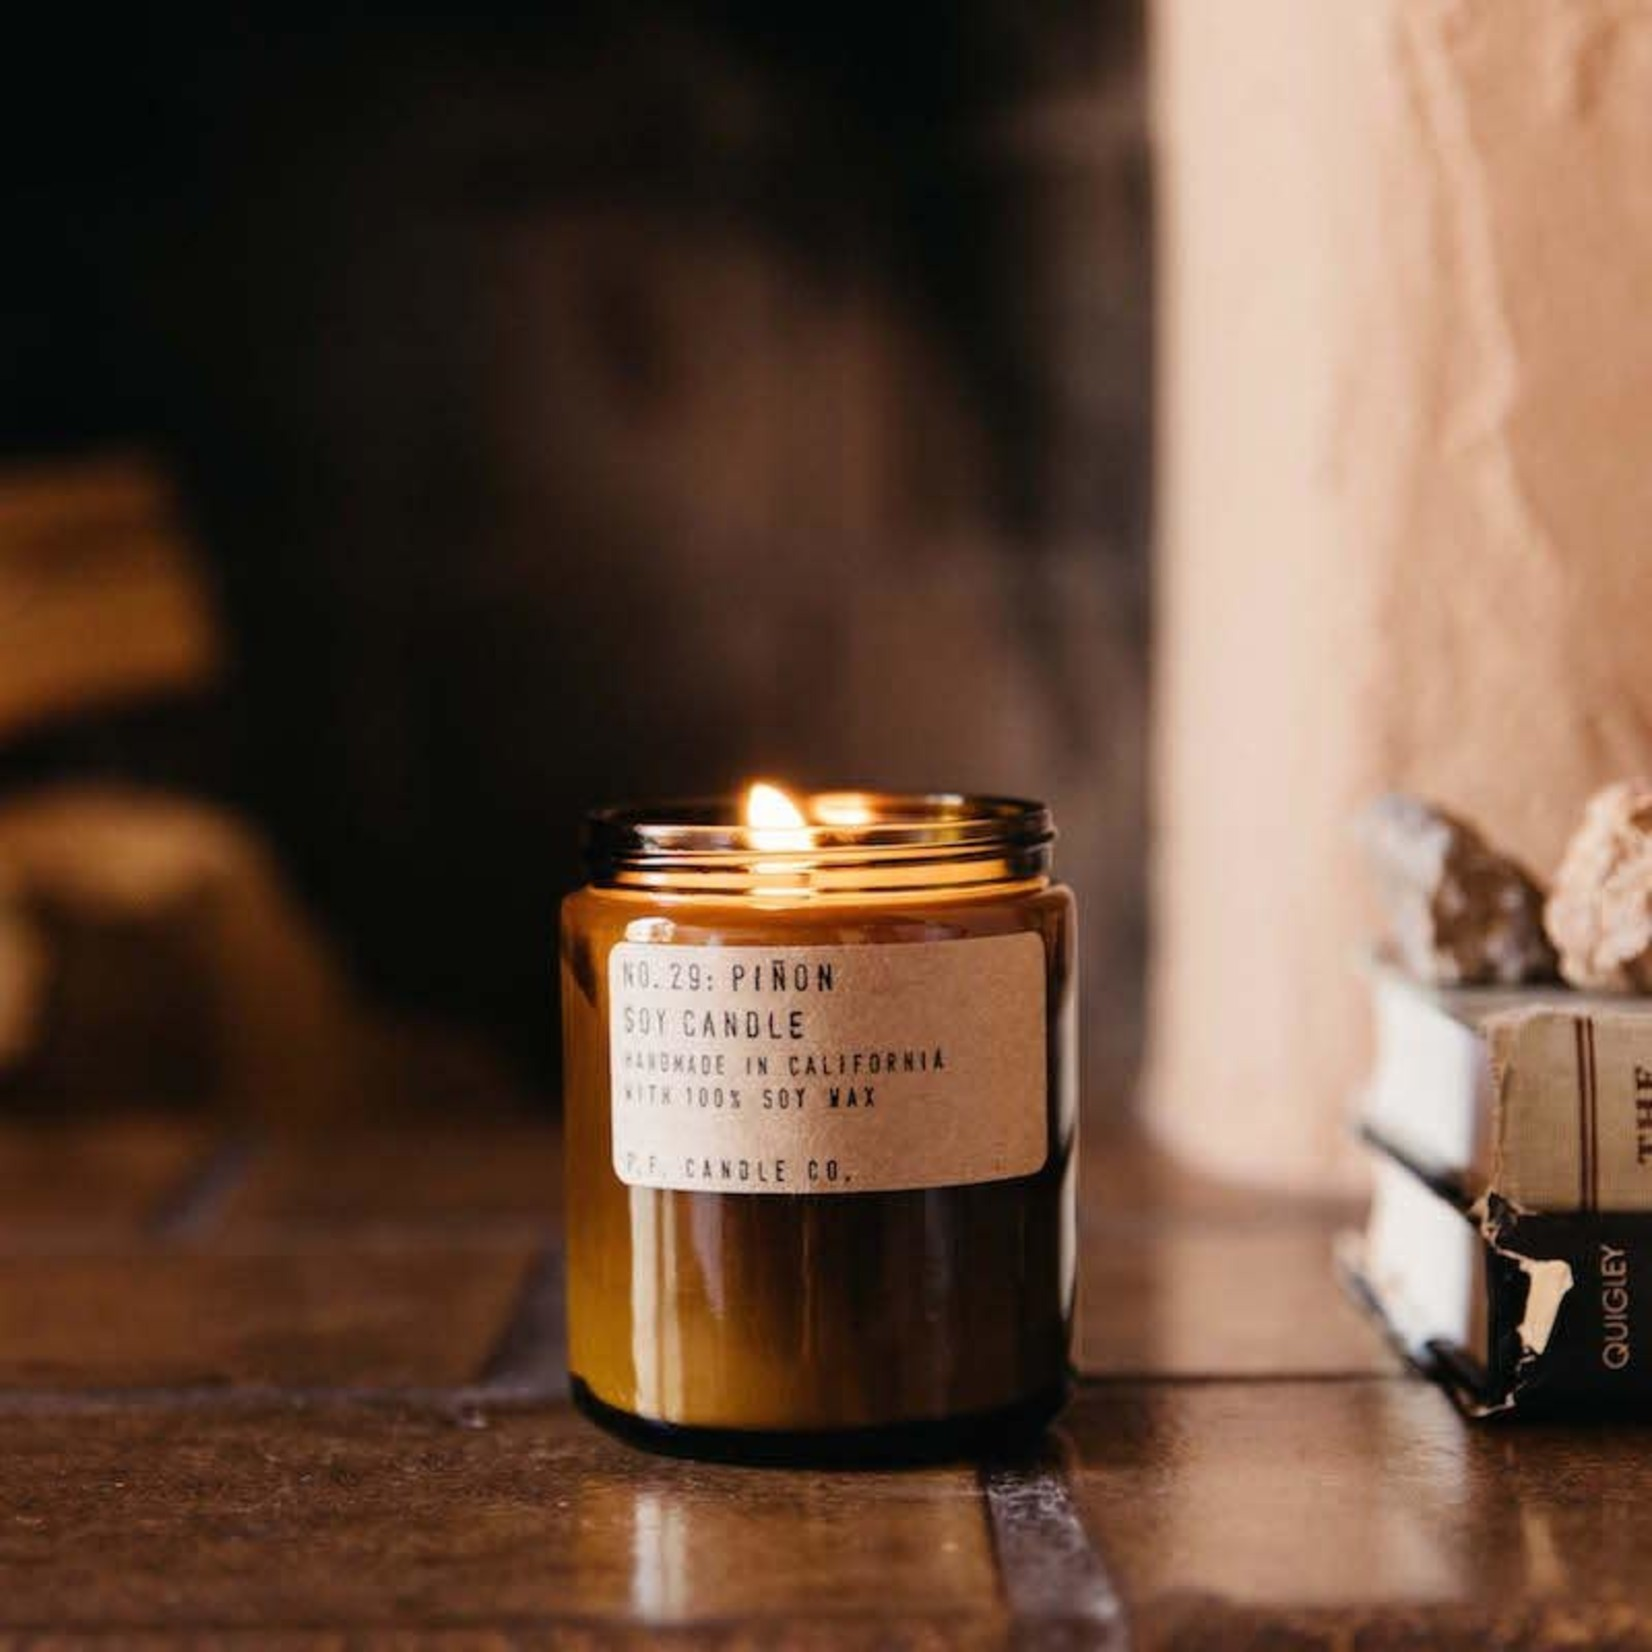 P.F. Candle Co. P.F. Soy Candle 7.2oz Pinon